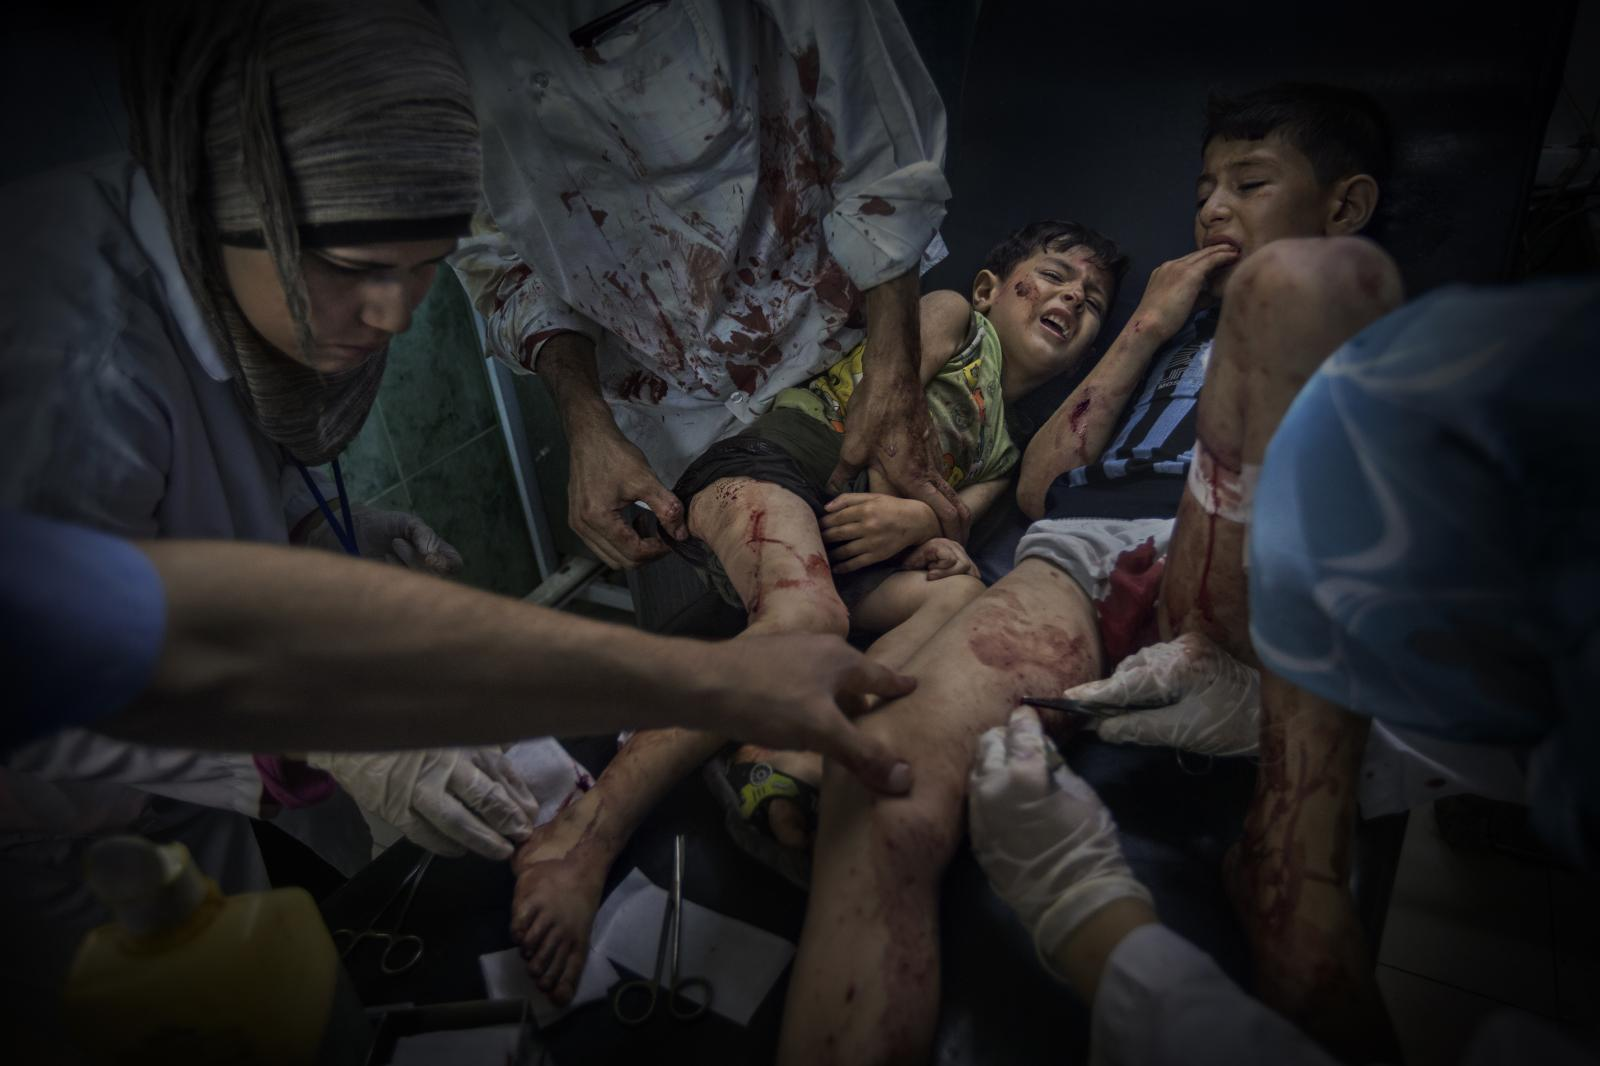 The army of Bashar al-Assad bombarded several houses and bakeries, where people had been standing in line since dawn to buy bread. As a result, 50 people died and 197 were injured, most of them children. Two brothers are treated for machine-gun wounds at Dar al-Shifa Hospital, between Al-Shaar and Taril Al-Bab (Syria).